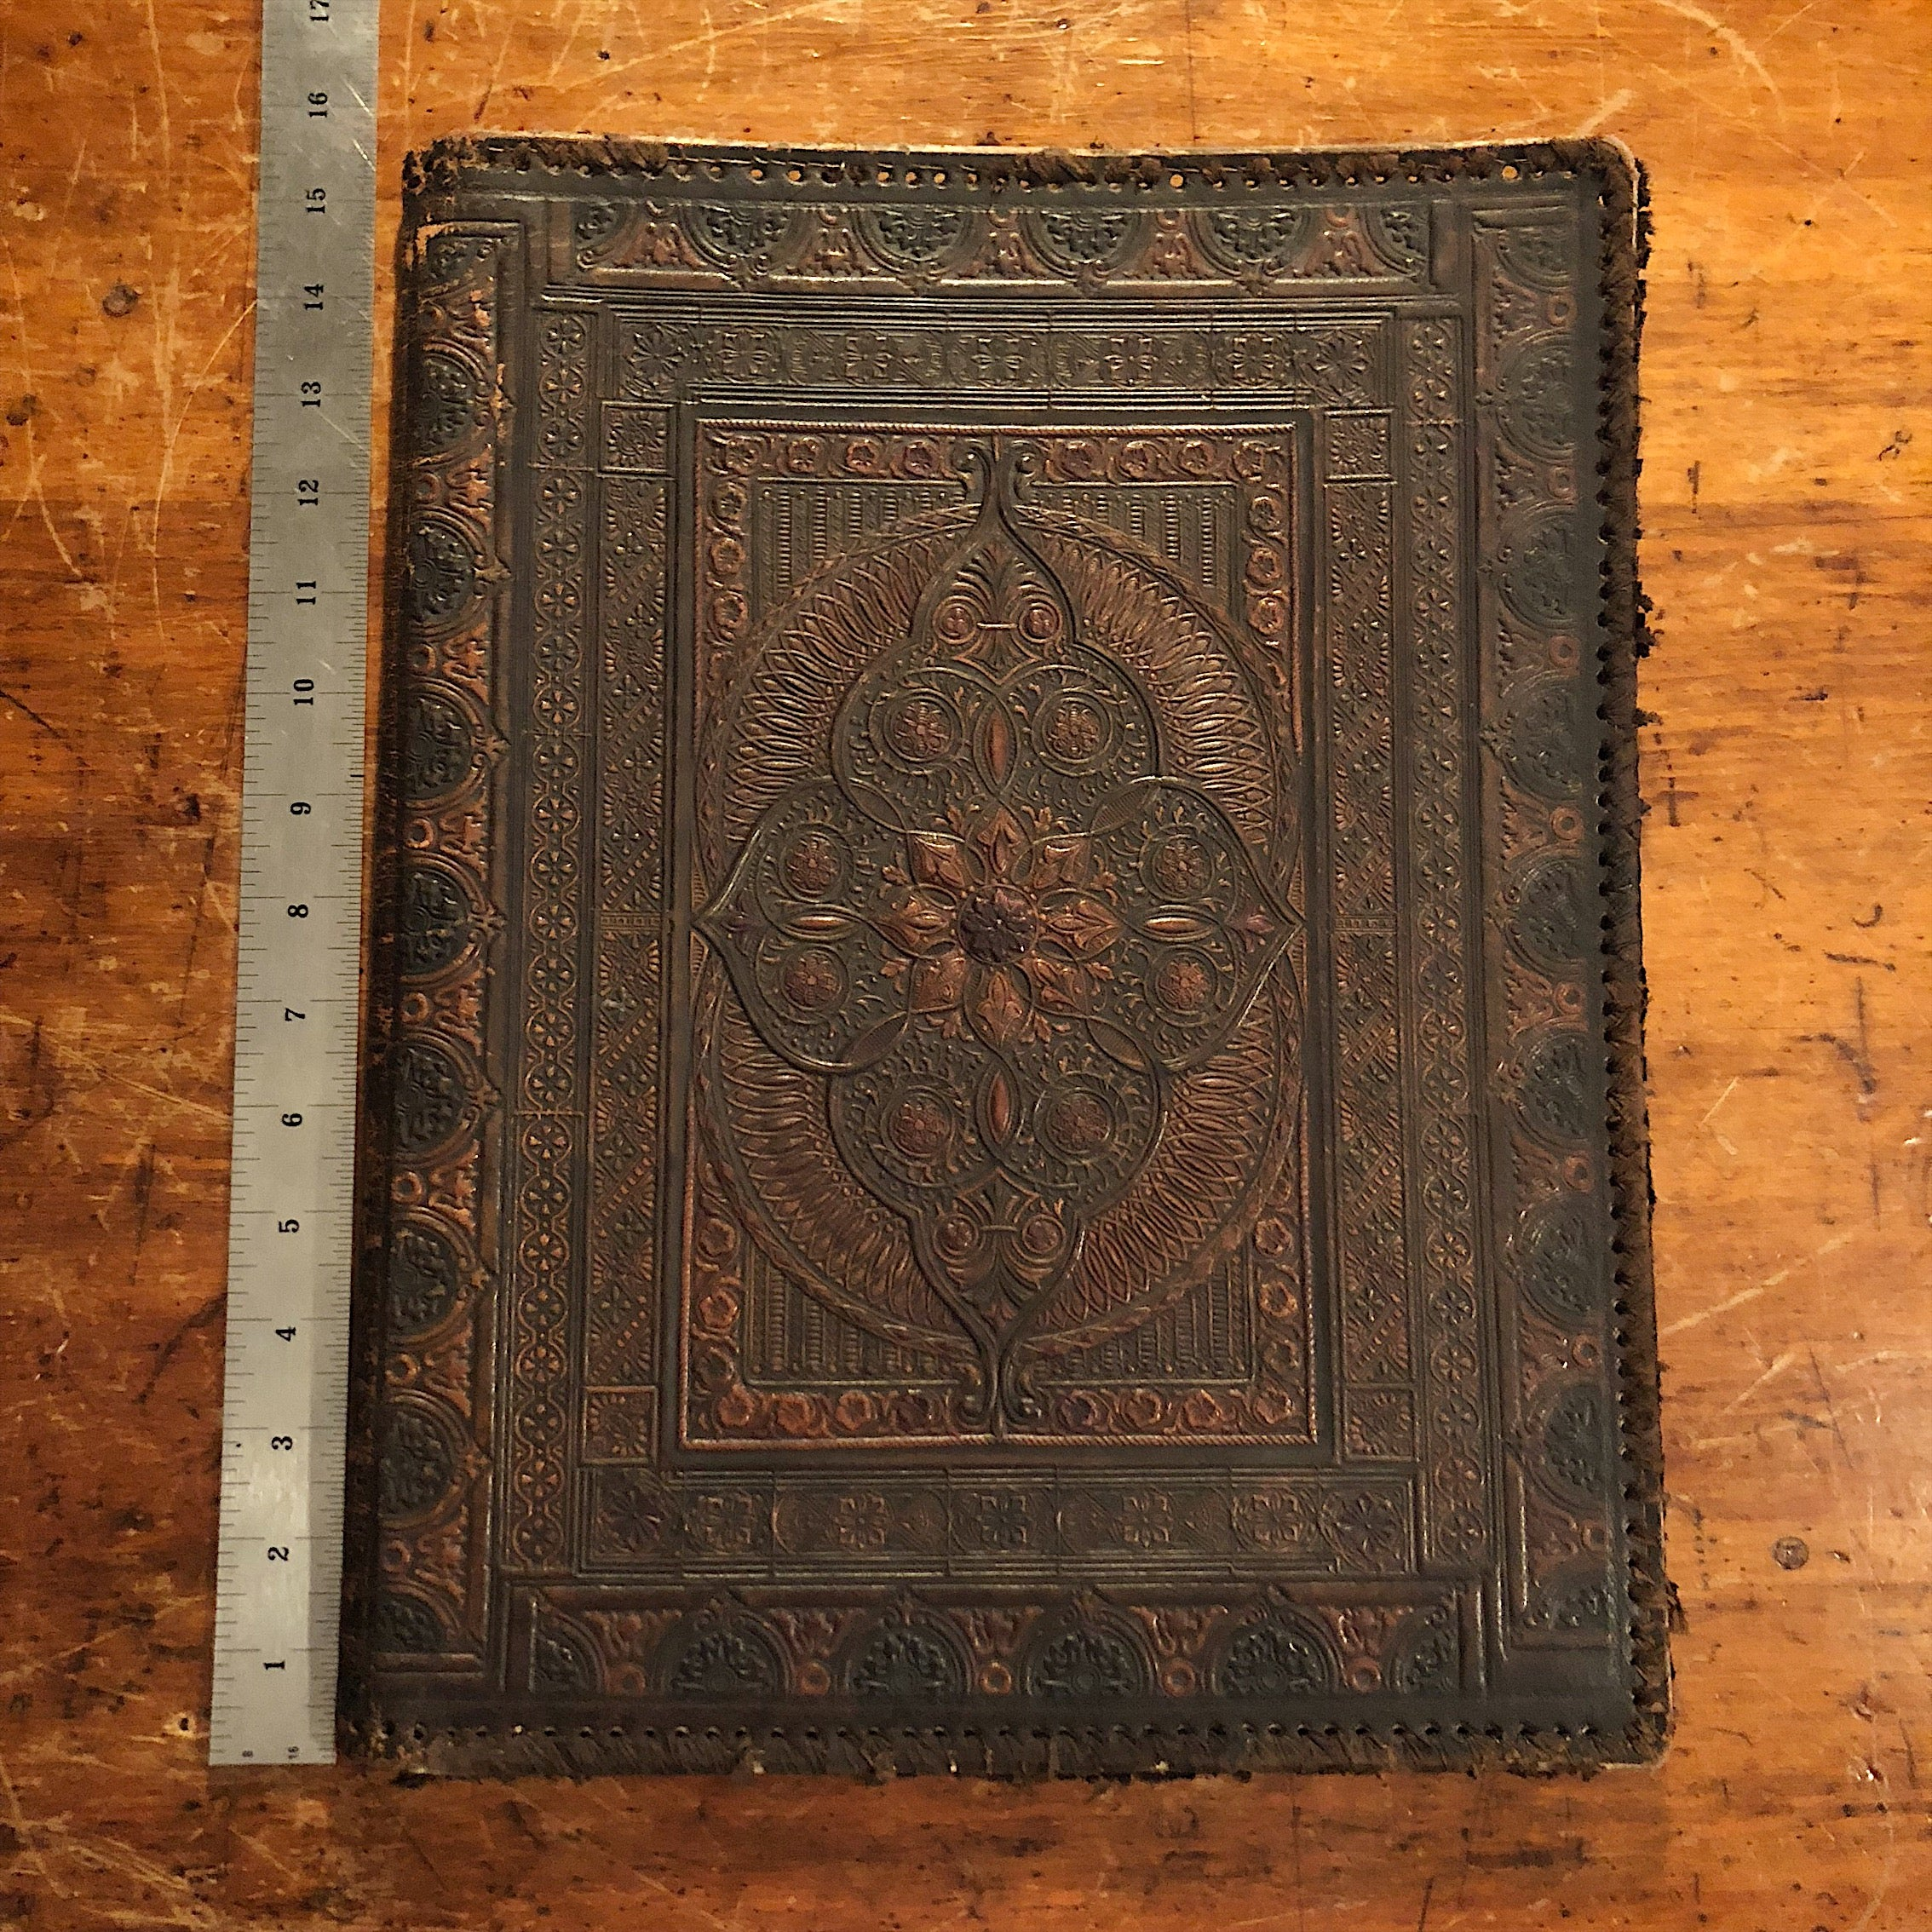 Antique Leather Portfolio Cover with Tooled Ornate Design -Manuscript Cover - 1800s - Arts and Crafts - 19th Century